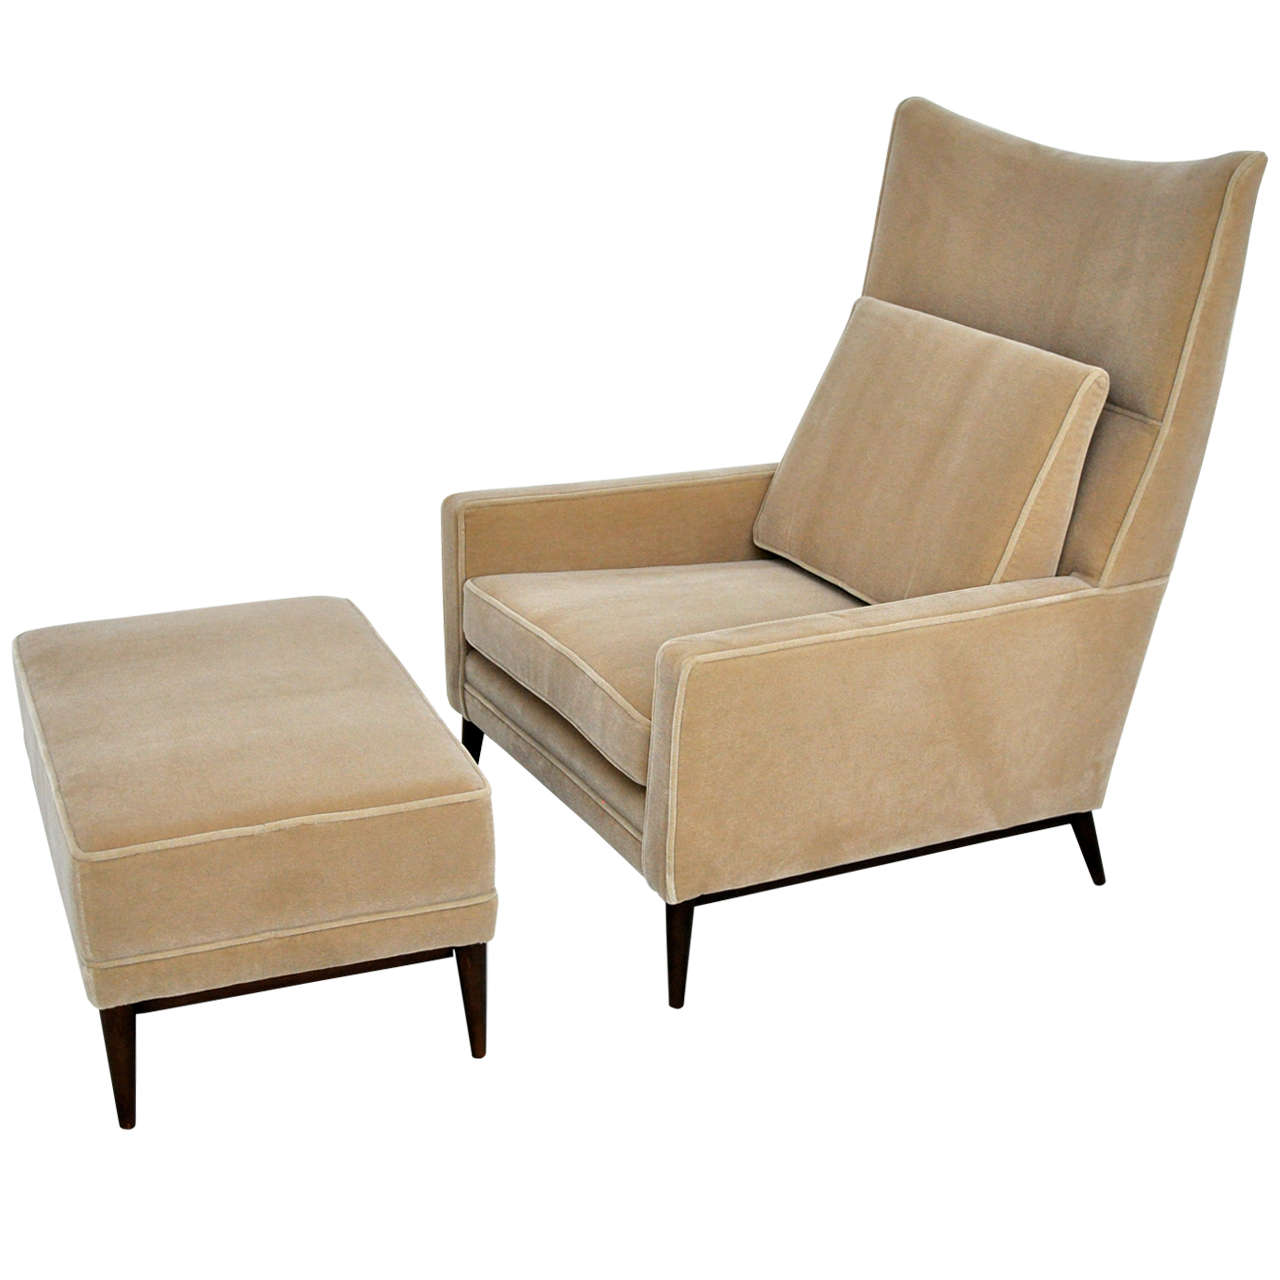 Paul McCobb Lounge Chair and Ottoman at 1stdibs